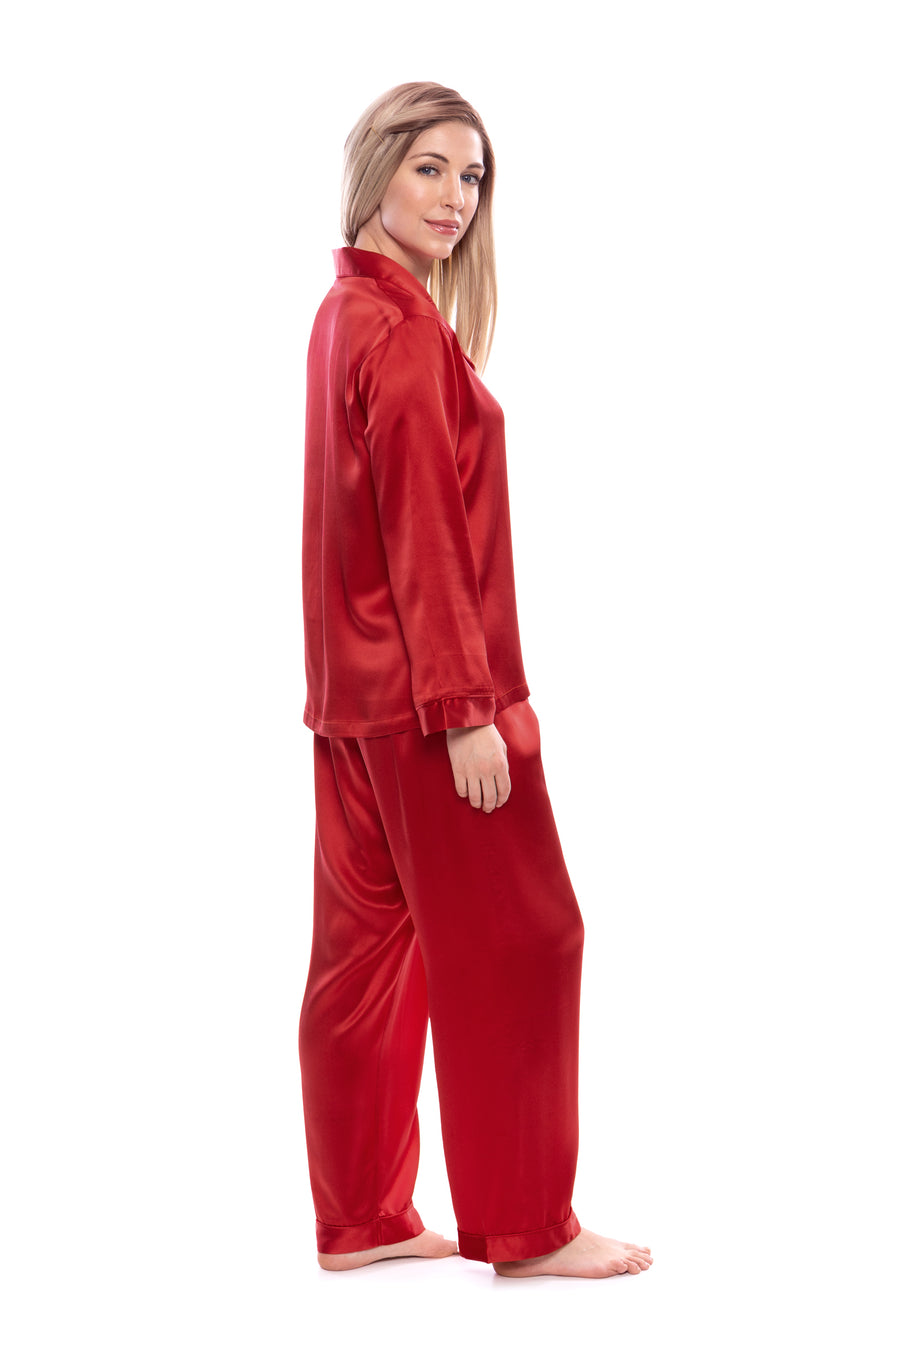 Morning Dew - Women's Silk Classic PJ - TexereSilk